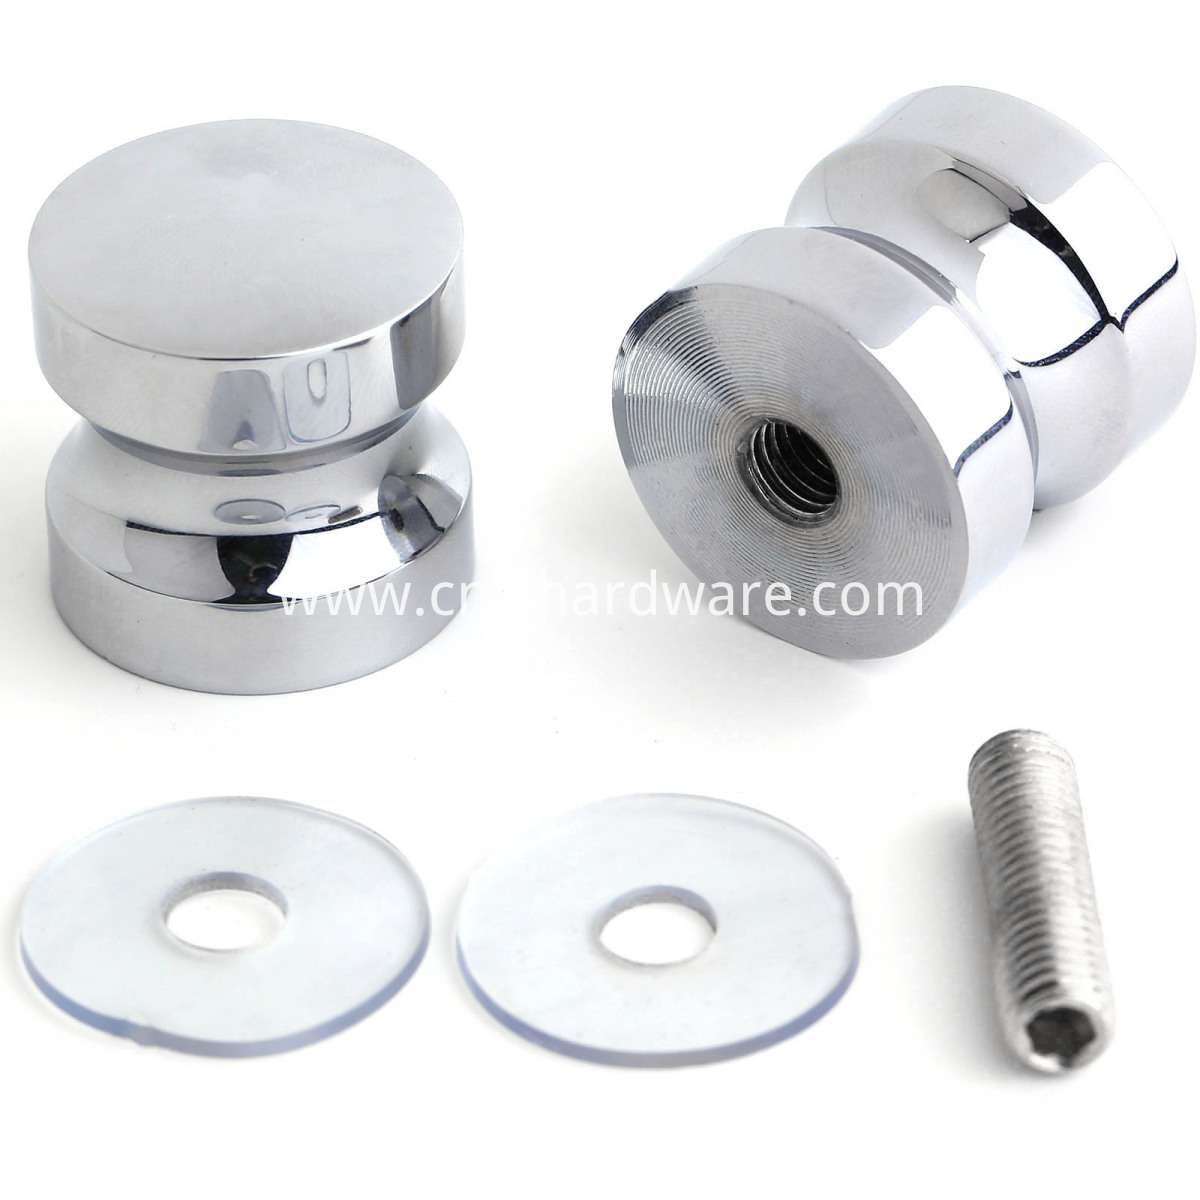 Brass material Chrome plated shower door knob